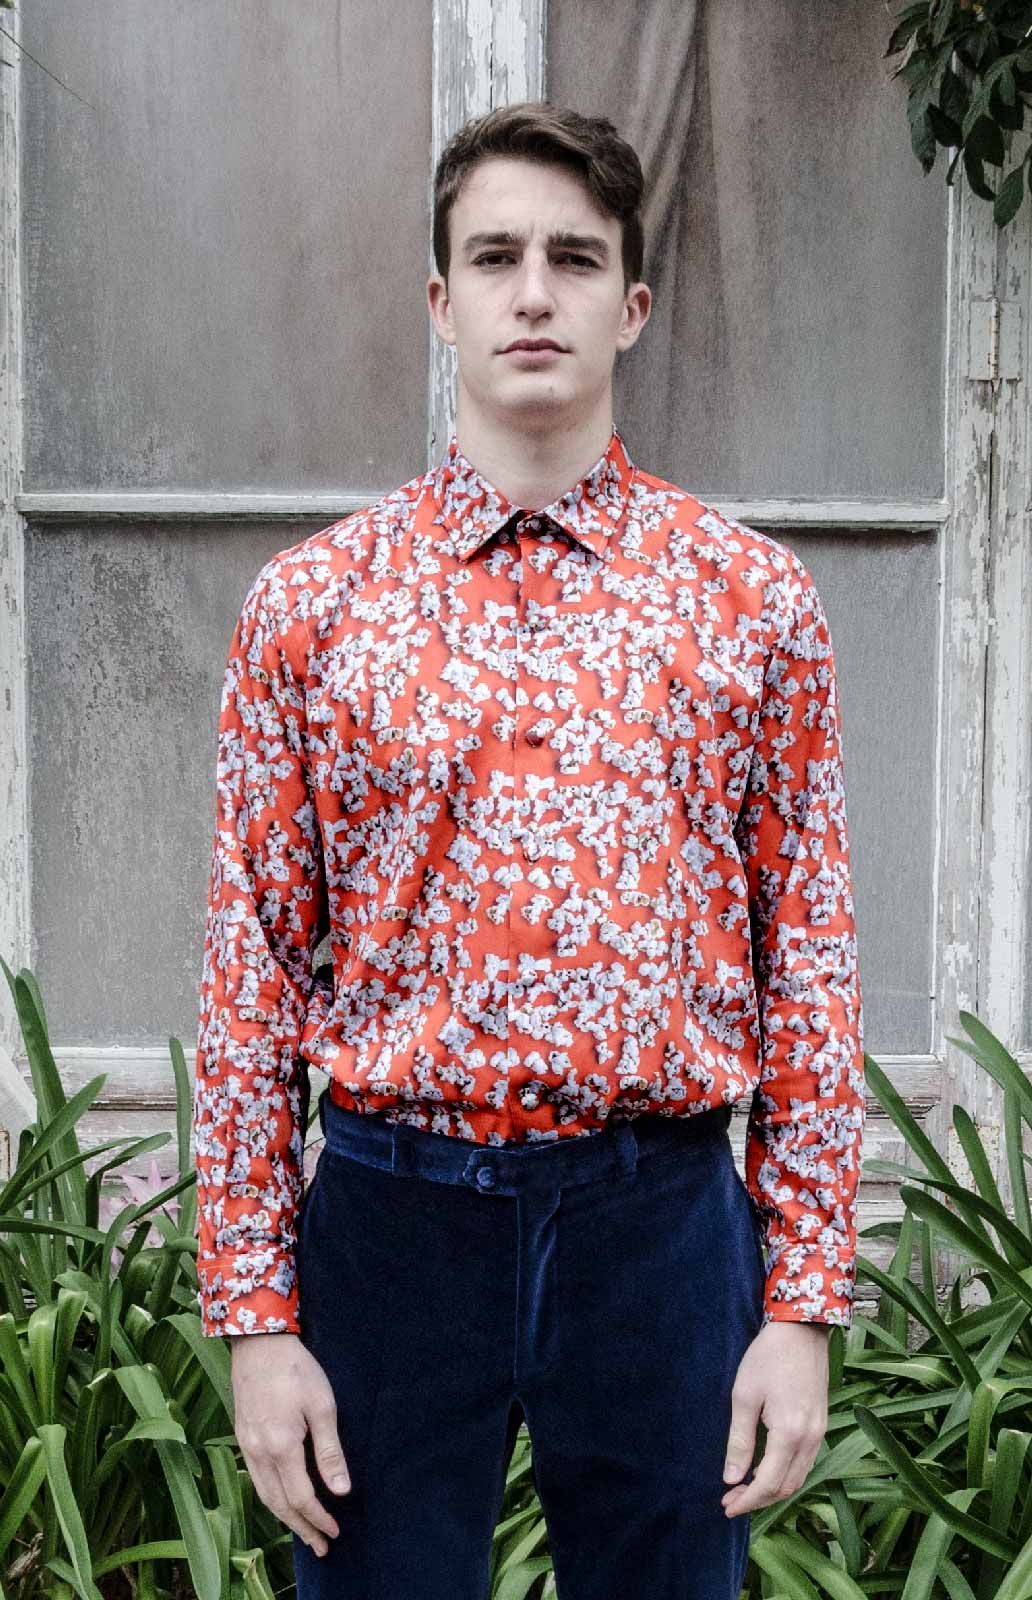 Orange popcorn shirt man